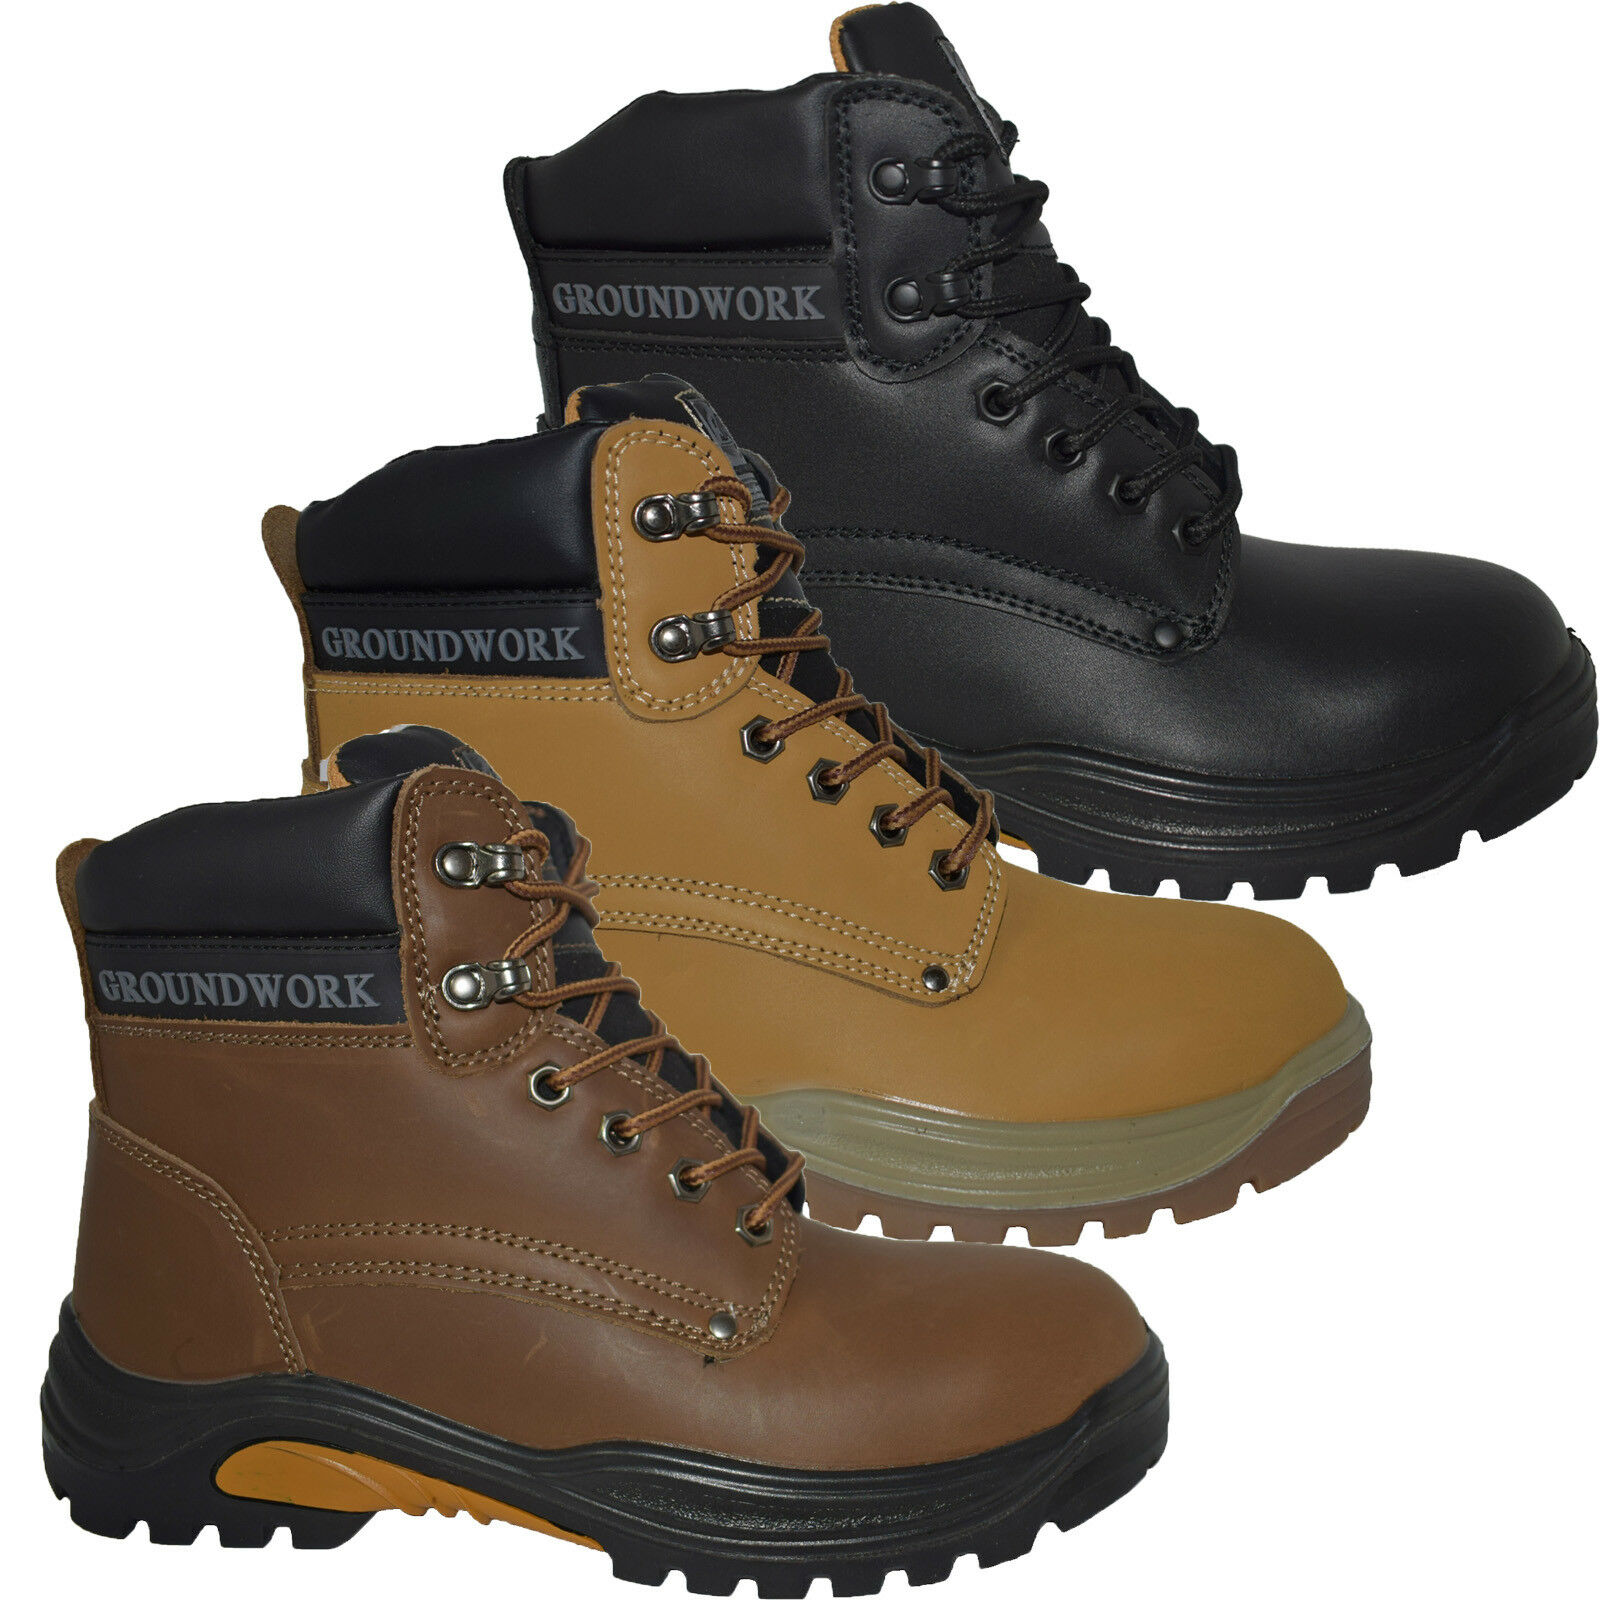 MENS GROUNDWORK SAFETY LACE UP BOOTS TRAINER STEEL TOE CAP ANKLE WORK HIKER SHOE